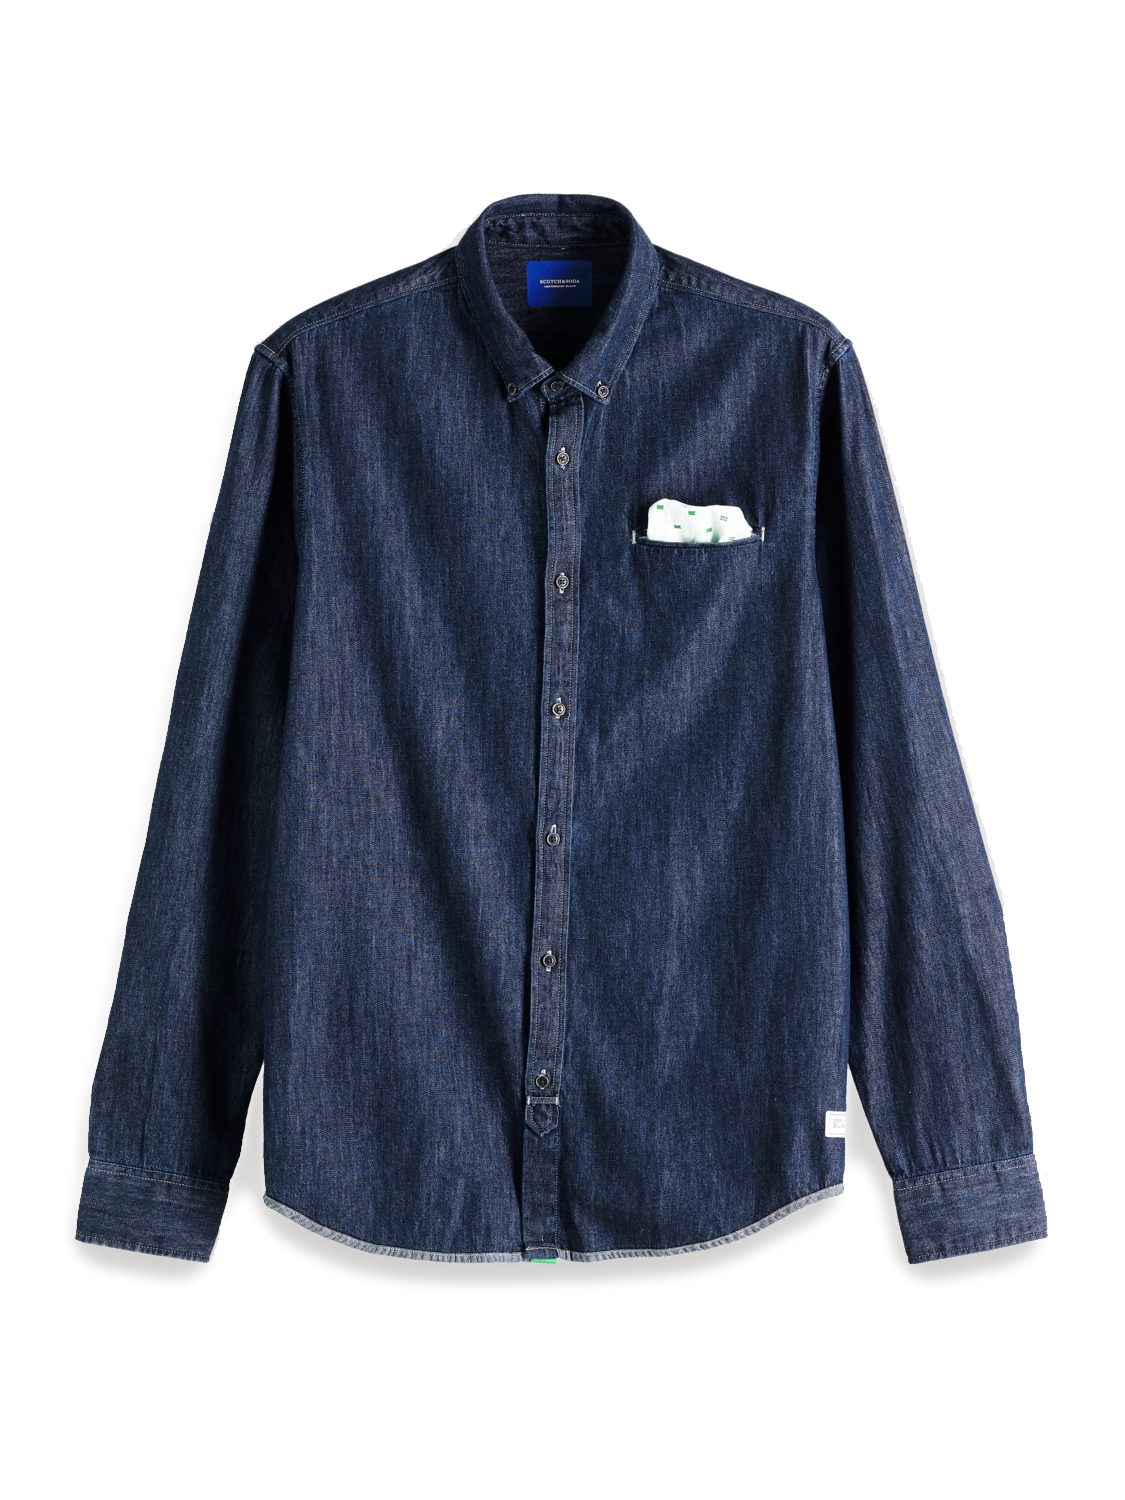 Scotch & Soda Regular Fit Denim Shirt | 151133